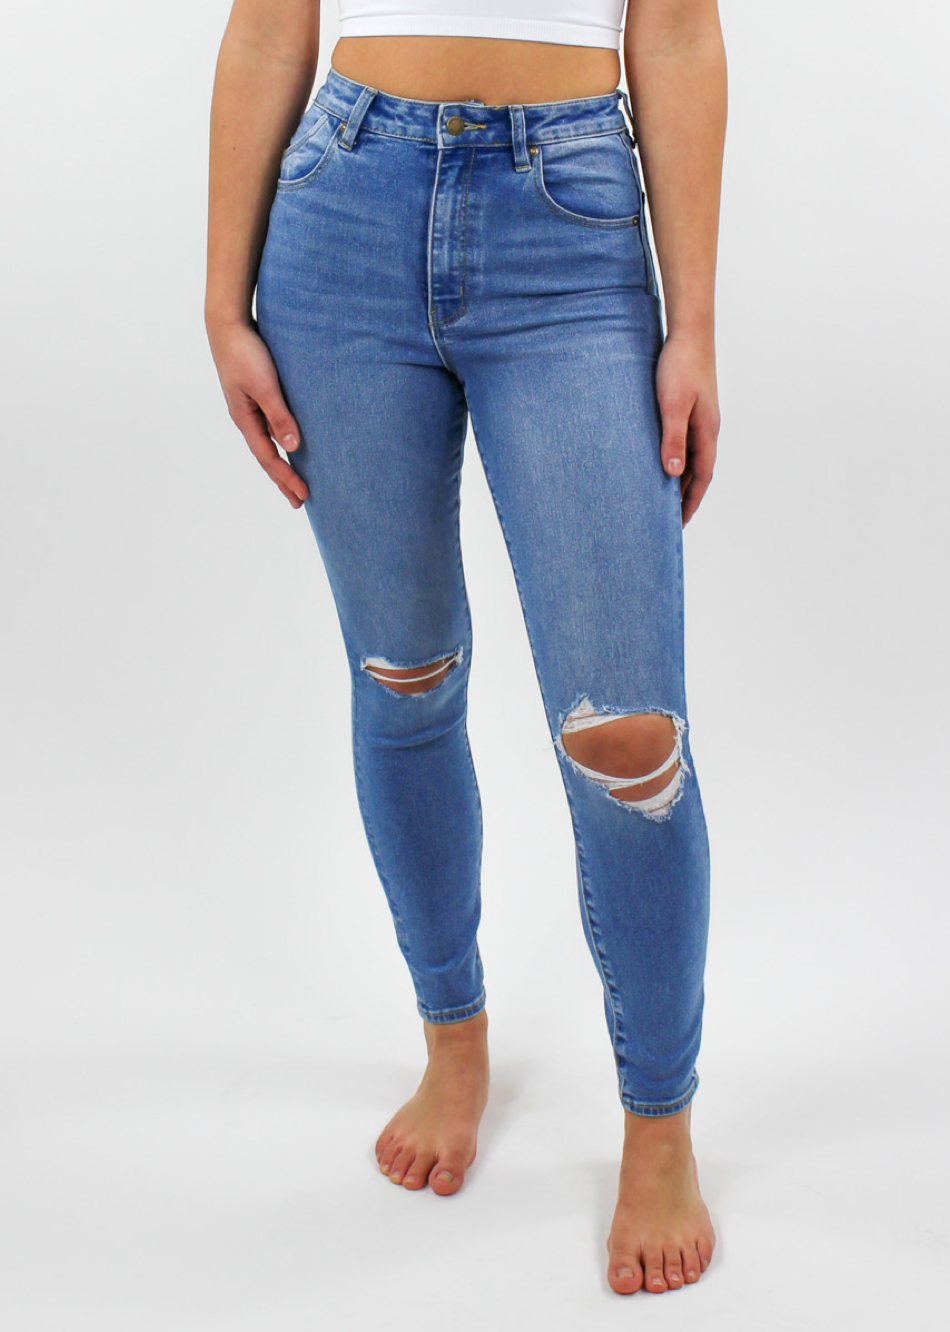 Rollas Eastcoast Ankle Mid Rise Distressed Jeans ★ Medium Wash Denim - Rock N Rags